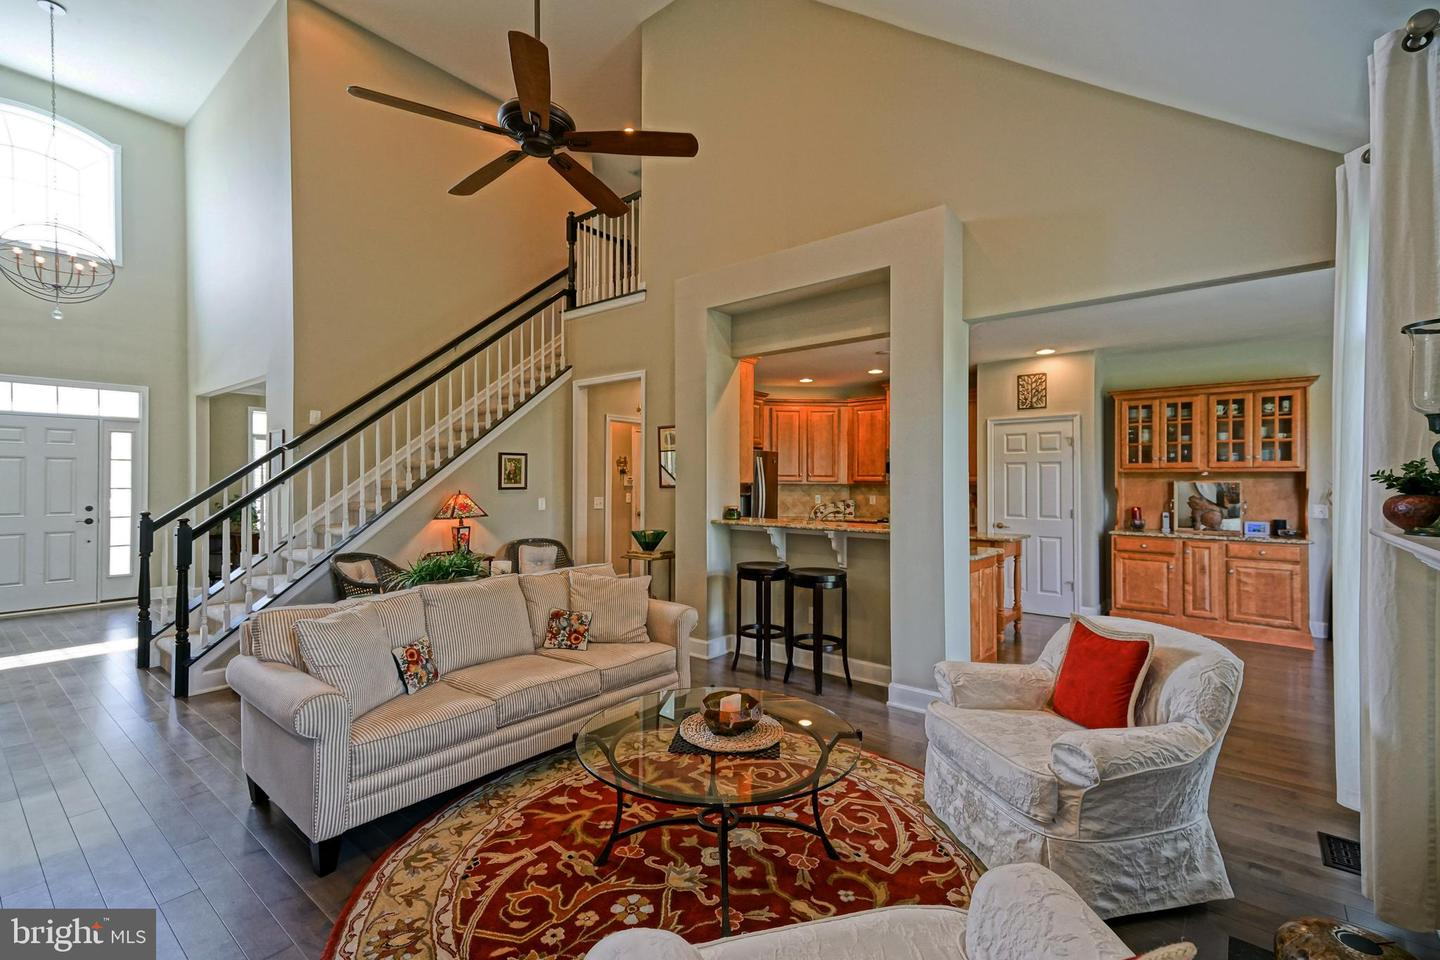 DESU139128-301667380593-2019-08-05-10-43-56 35222 Overfalls Dr N | Lewes, DE Real Estate For Sale | MLS# Desu139128  - Lee Ann Group